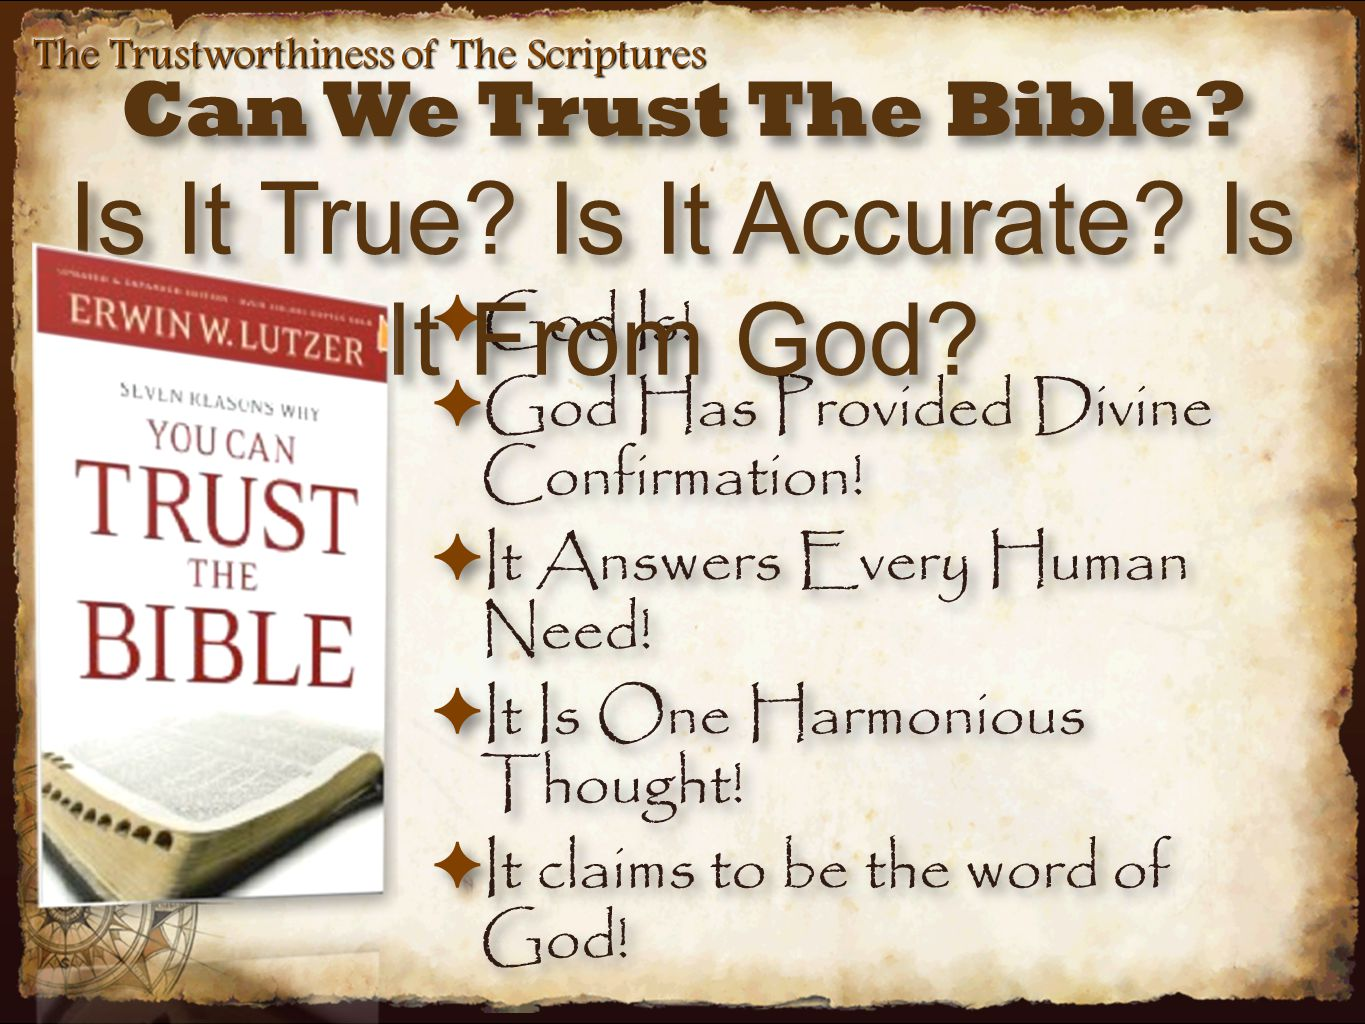 The Trustworthiness of The Scriptures The Bible is inspired in the sense that Spirit-moved men wrote God breathed words that are divinely authoritative for Christian faith and practice...